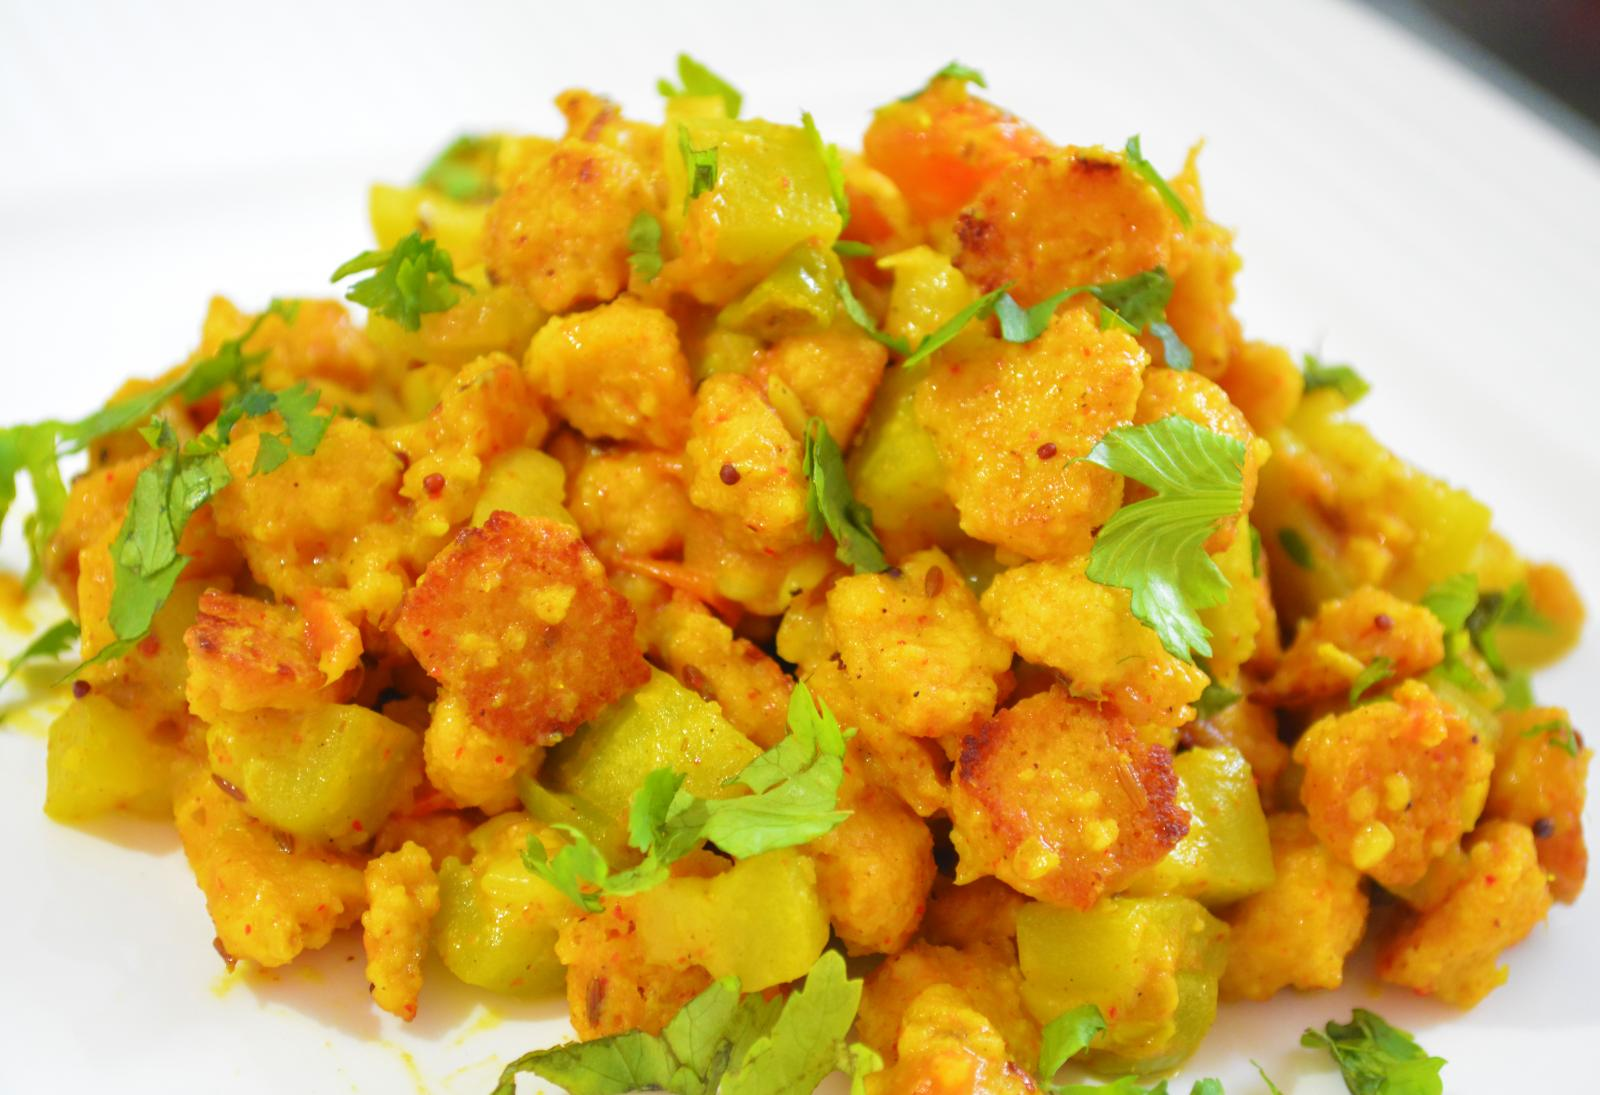 lauki badi ki sabzi recipe in lauki badi ki sabzi recipe in hindi forumfinder Image collections